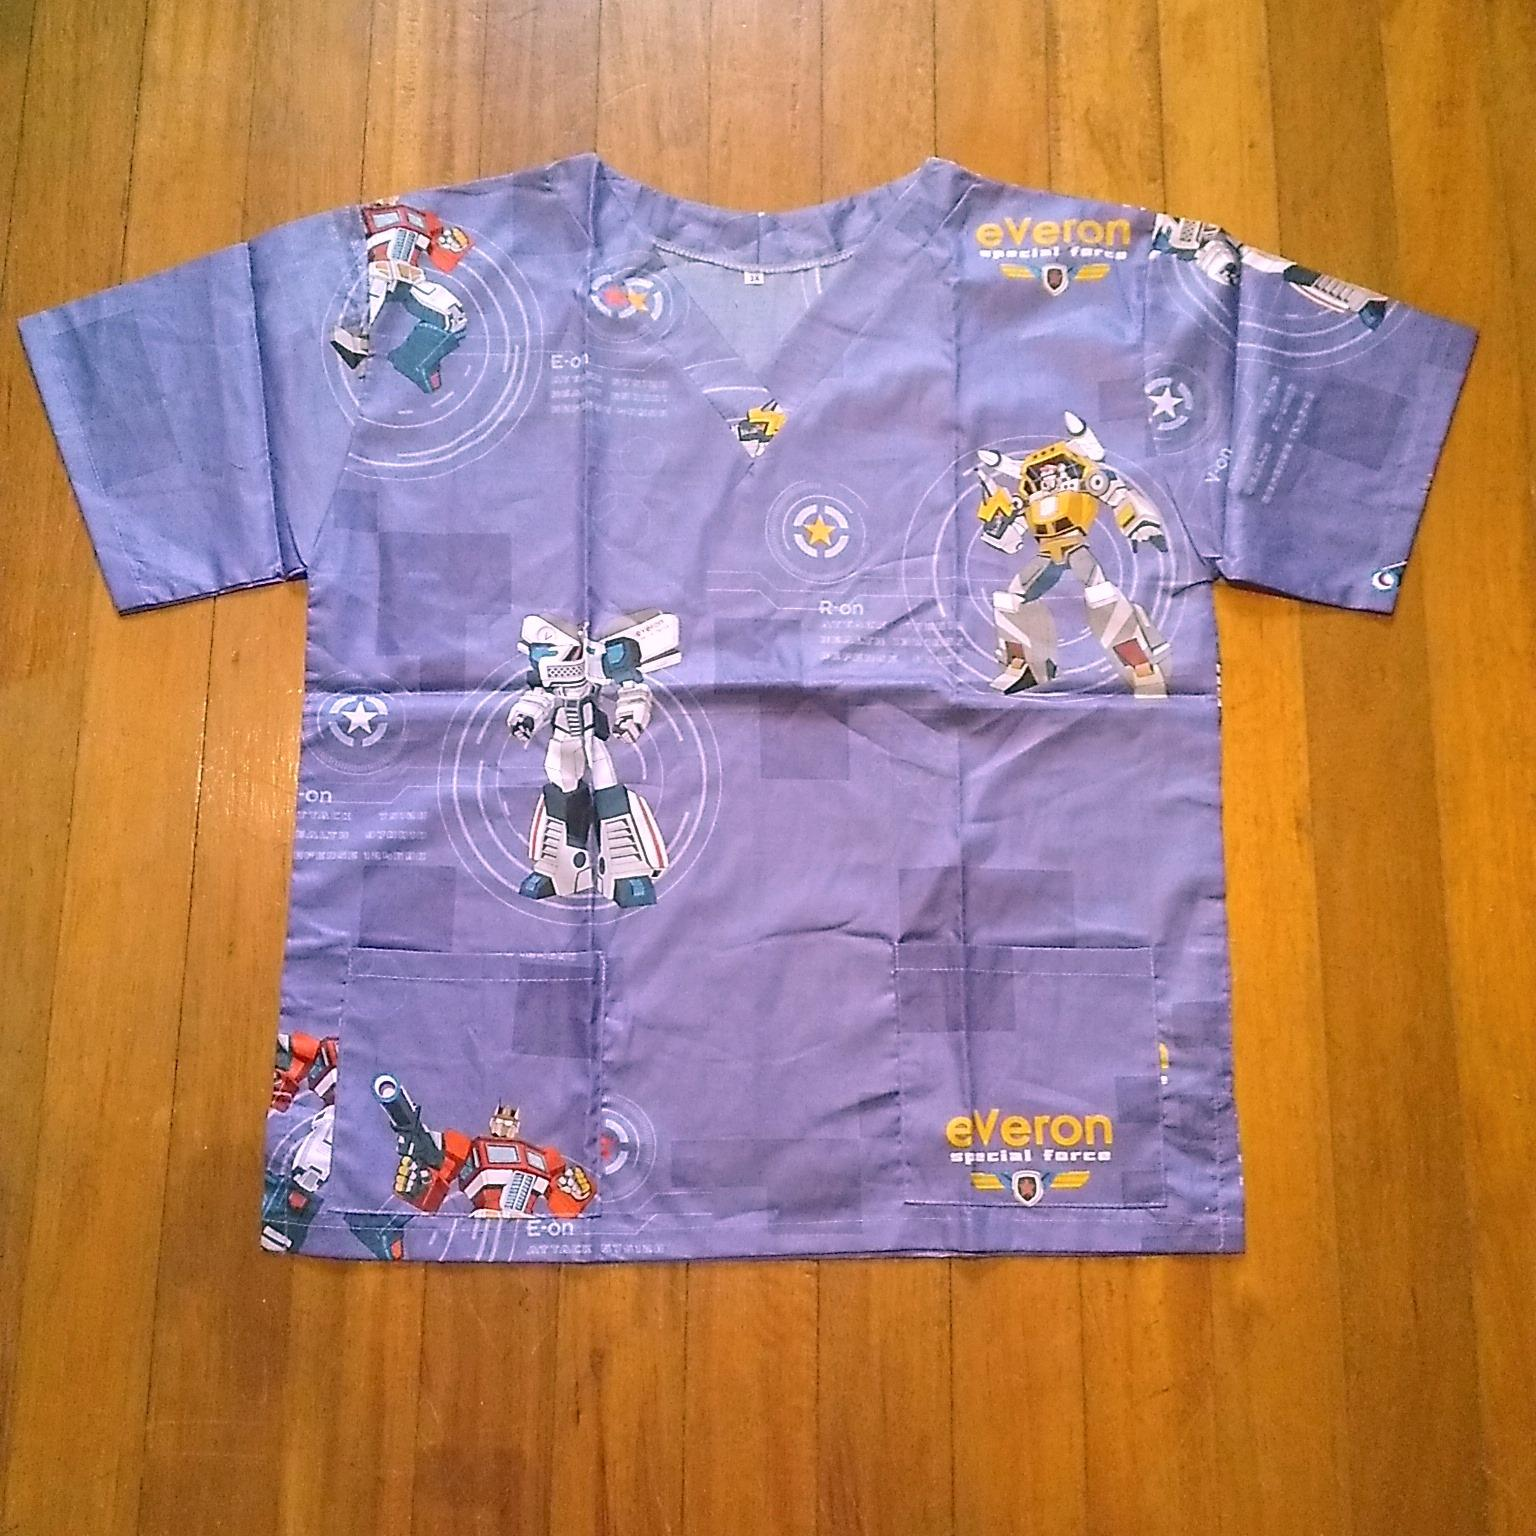 2fd0ebfb23b Scrub Suit for sale - Scrubs prices, brands & review in Philippines ...